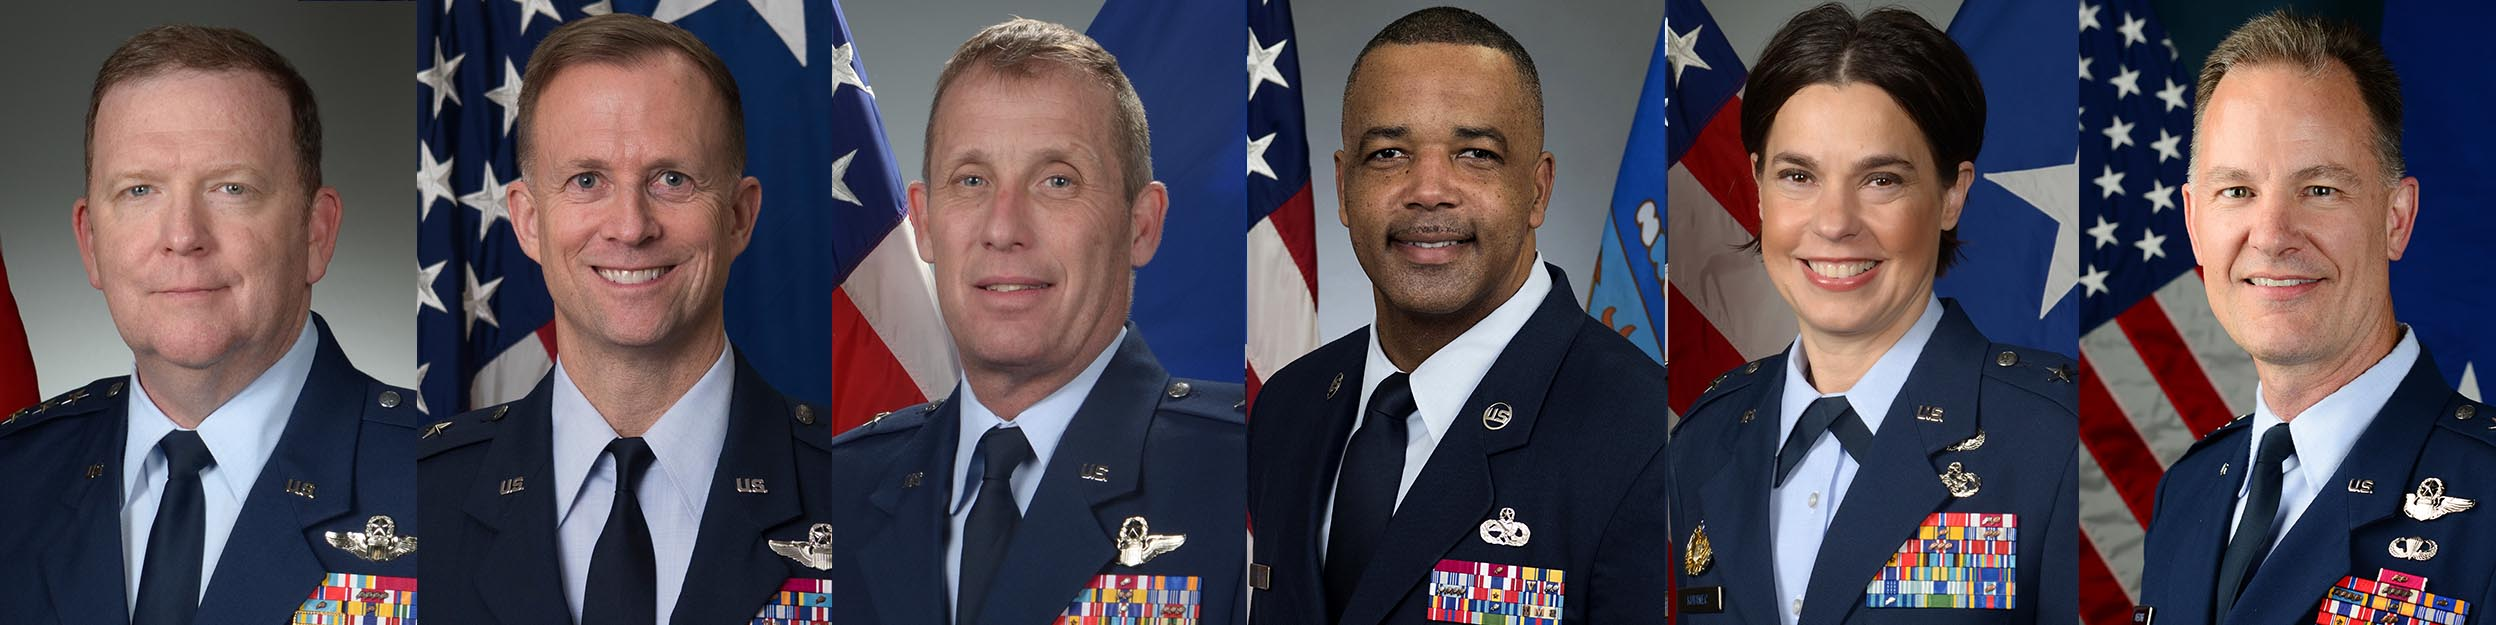 Air Force Reserve Command Senior Leadership